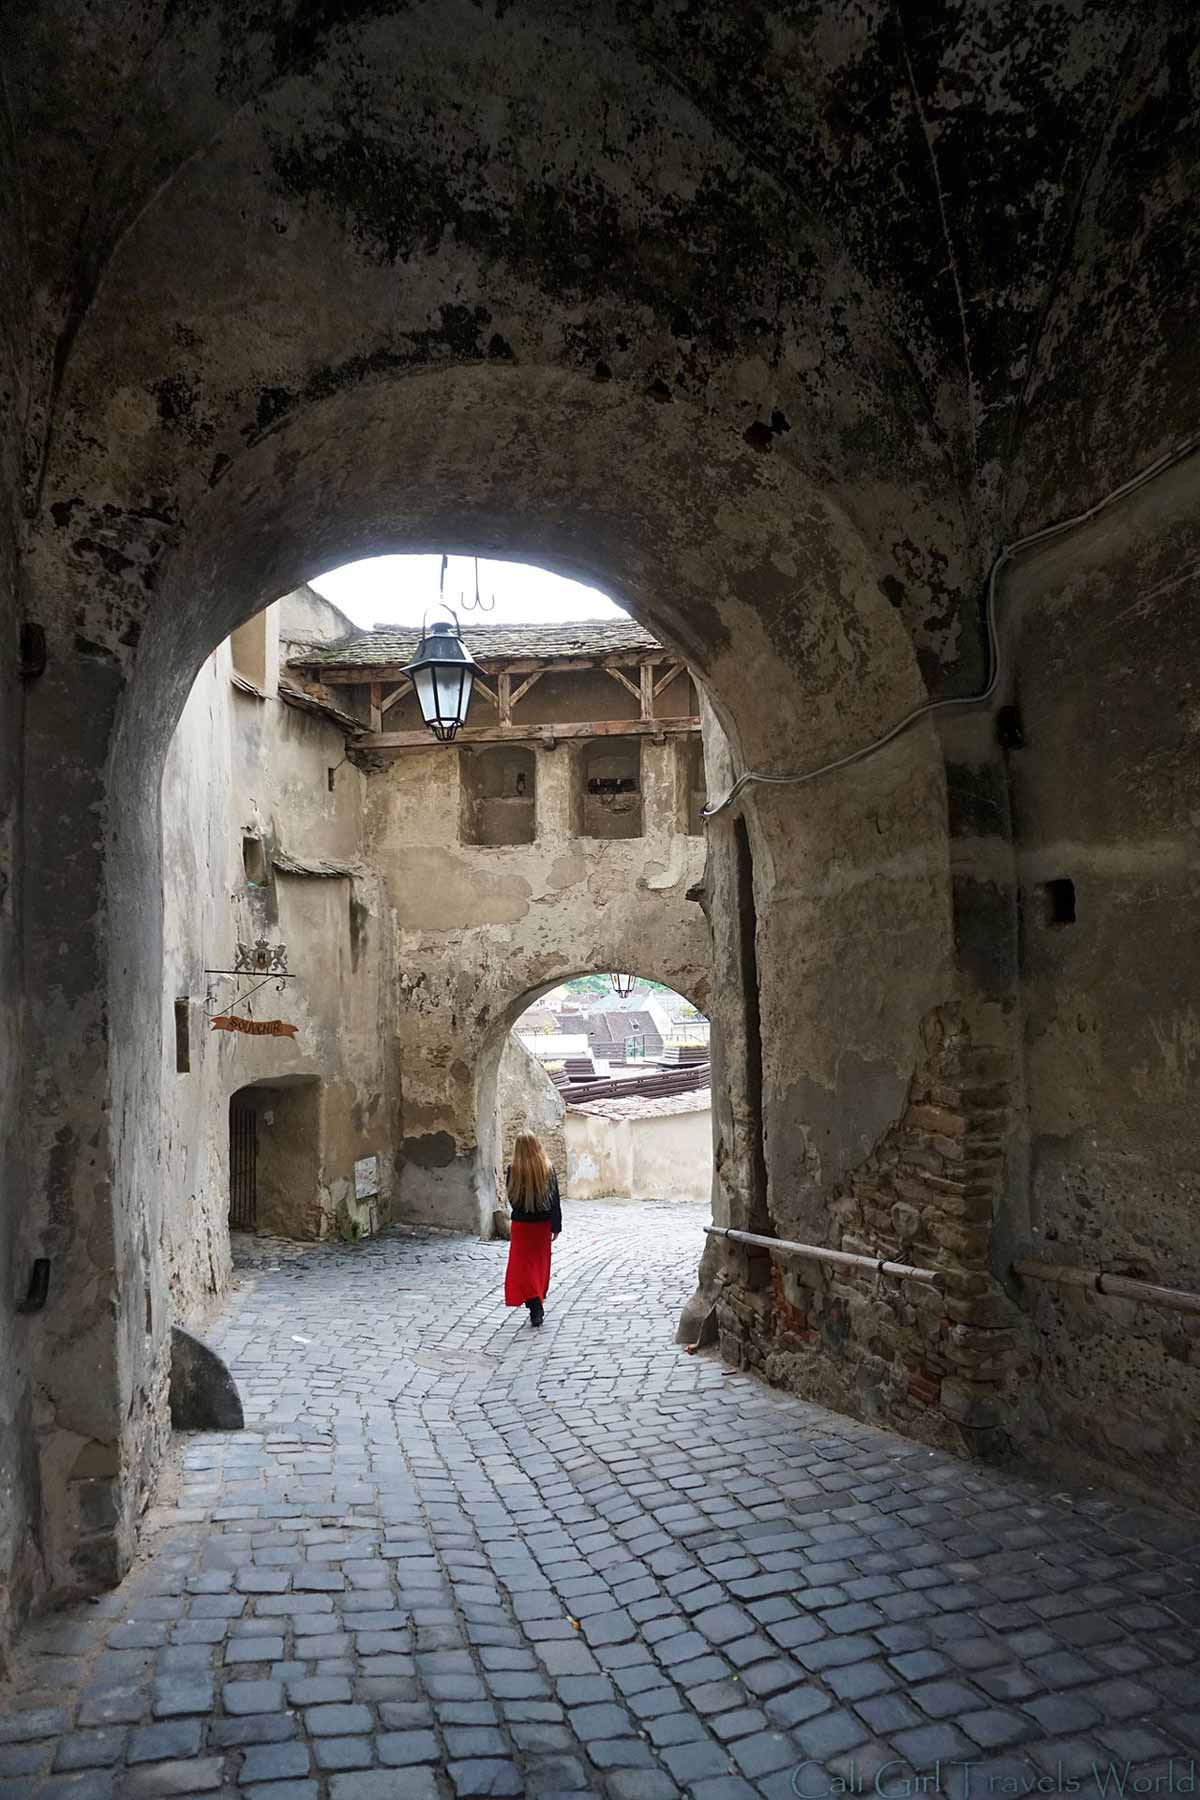 Walking through the arches of Sighisoara, Romania